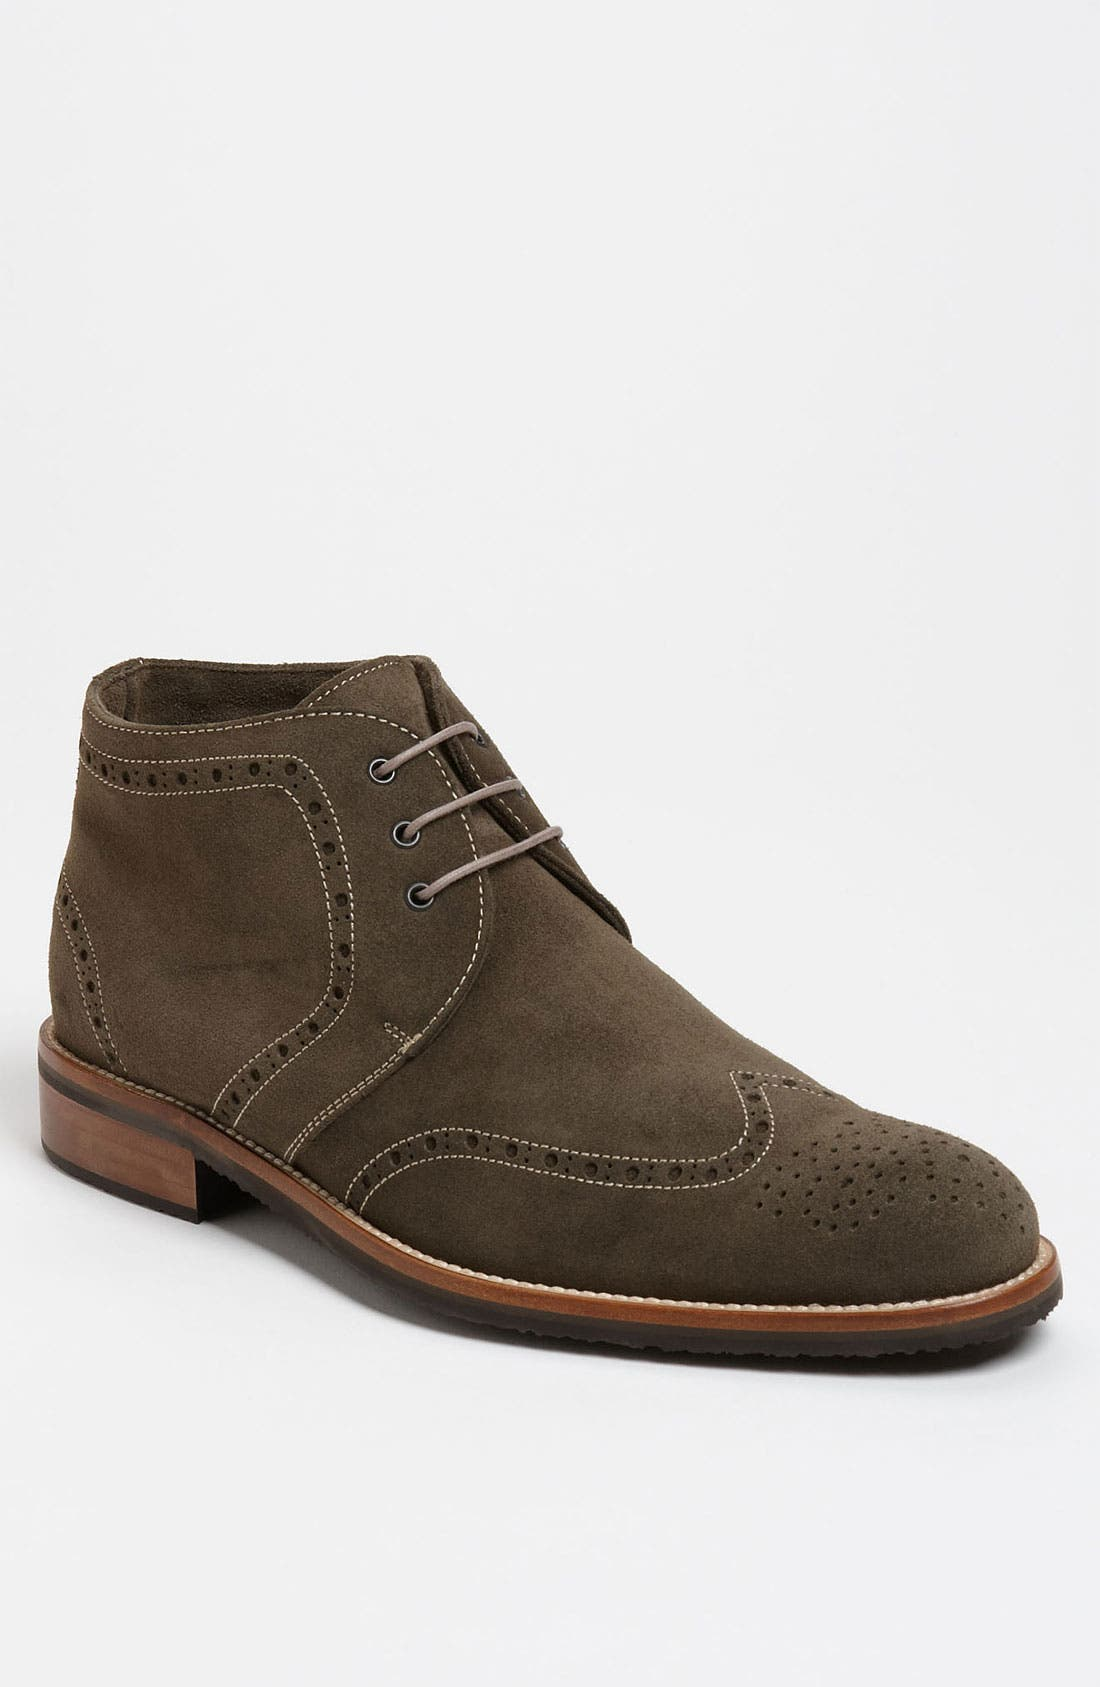 Main Image - Thomas Dean Suede Wingtip Chukka Boot (Online Only)